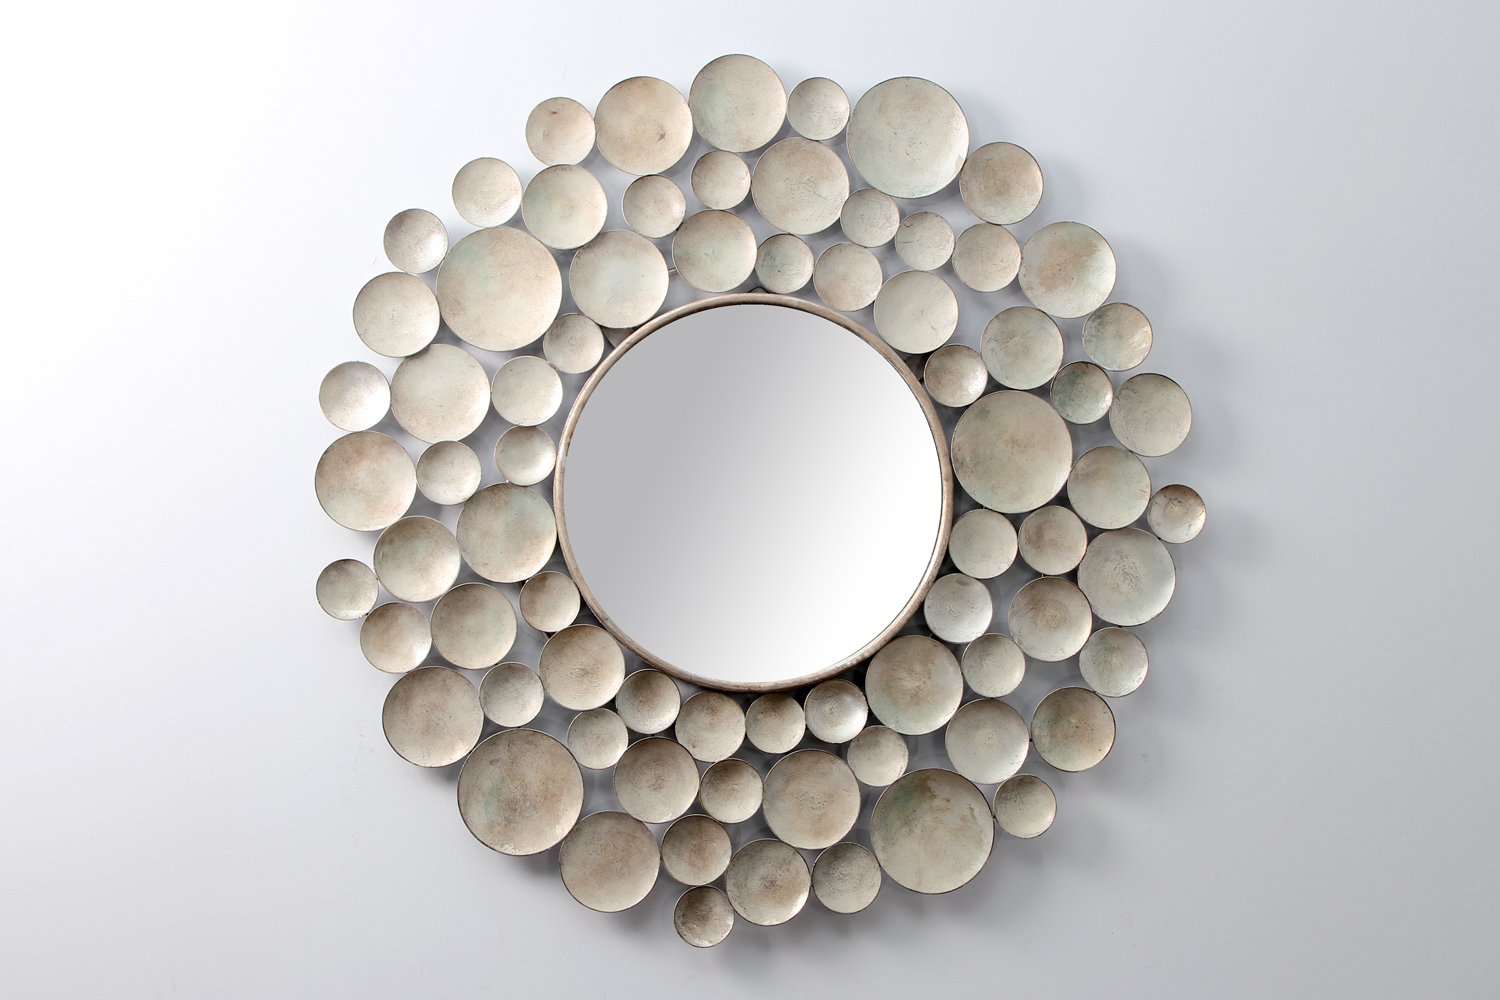 Sputnik Wall Mirror / Wall Sculpture Intended For Well Known Modern Contemporary Wall Mirrors (View 15 of 20)